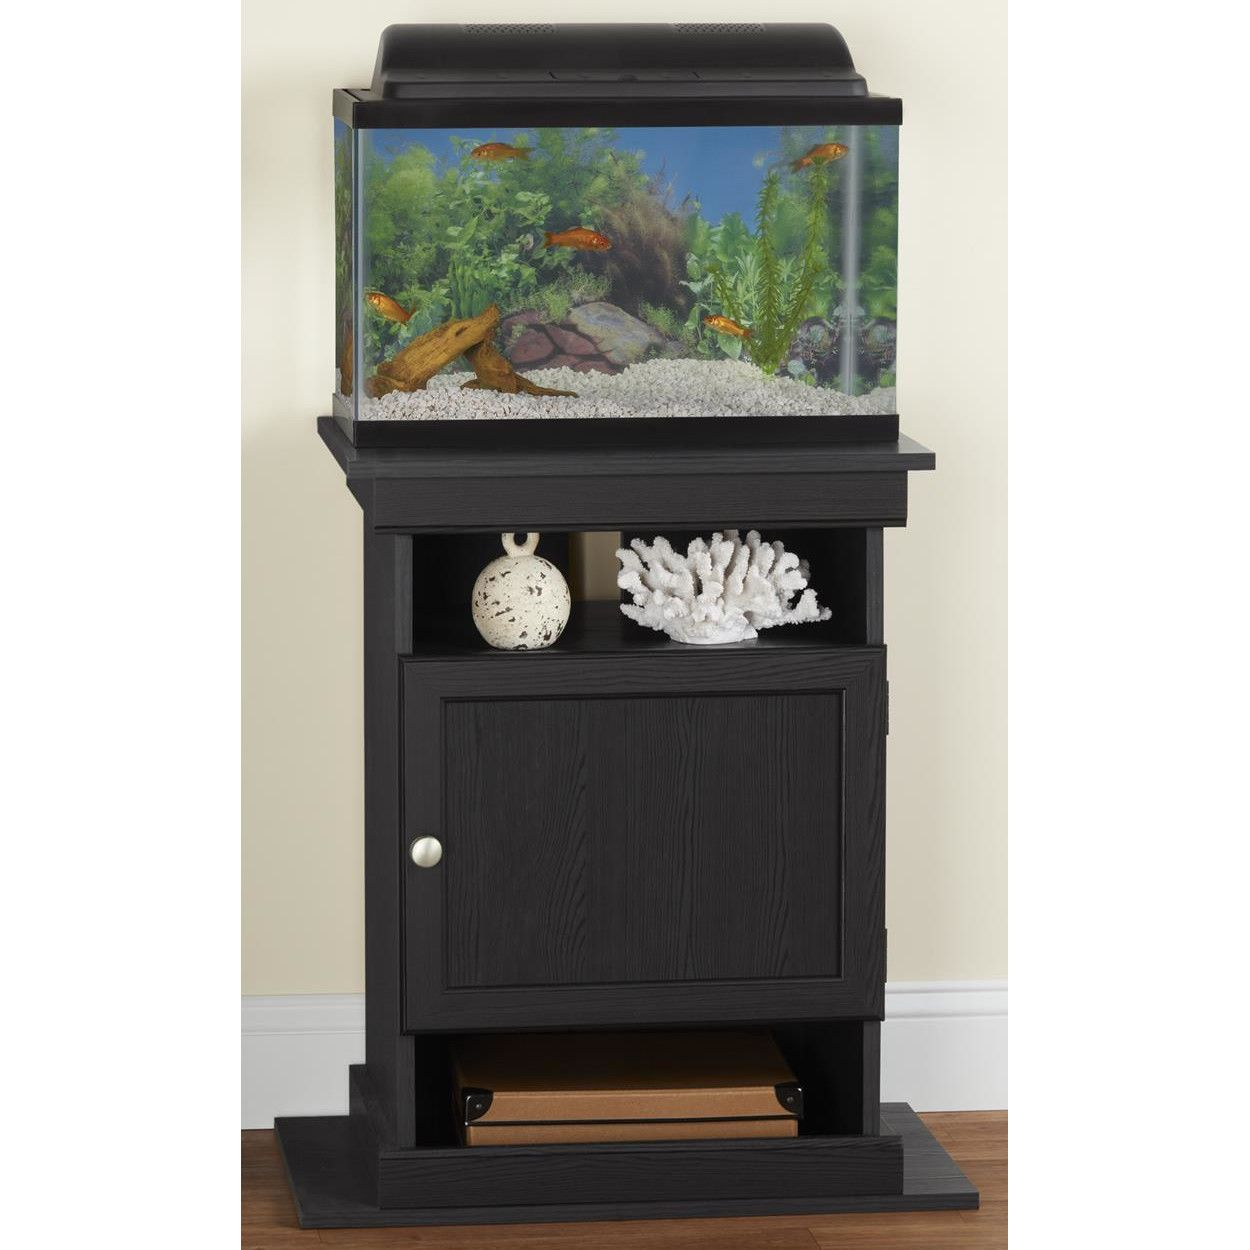 29 Best Home Aquarium Furniture Ideas To Beautify Your Room Aquarium Stand 20 Gallon Aquarium Stand Fish Tank Stand